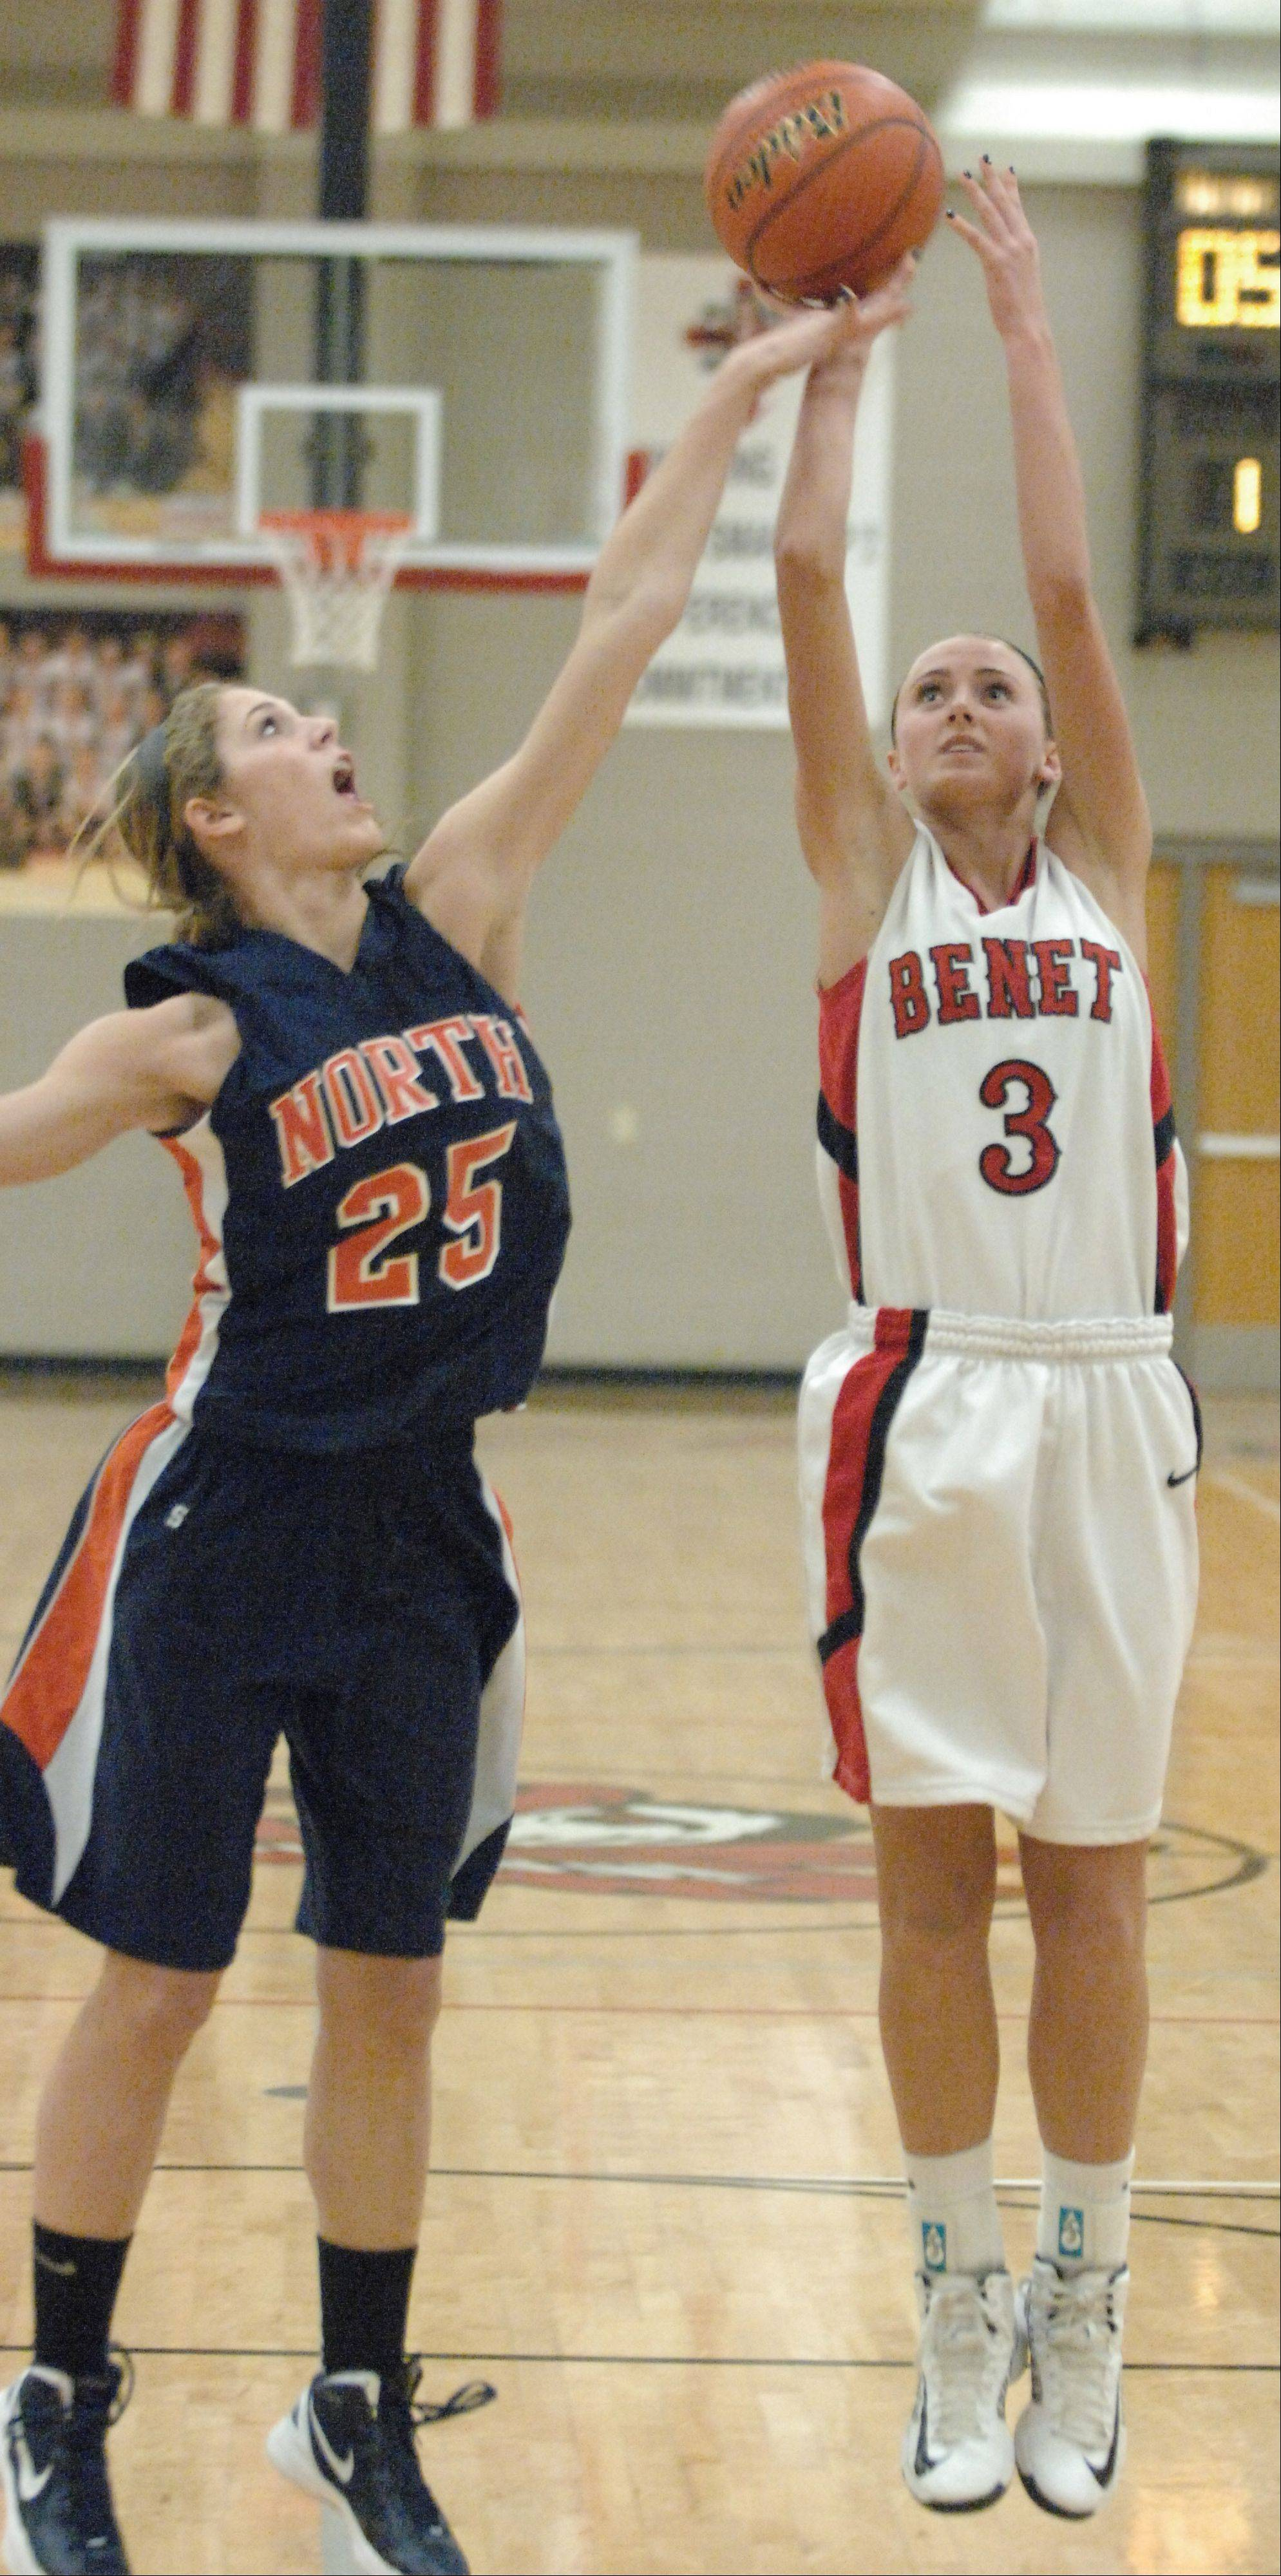 Prasse hits her mark for Benet